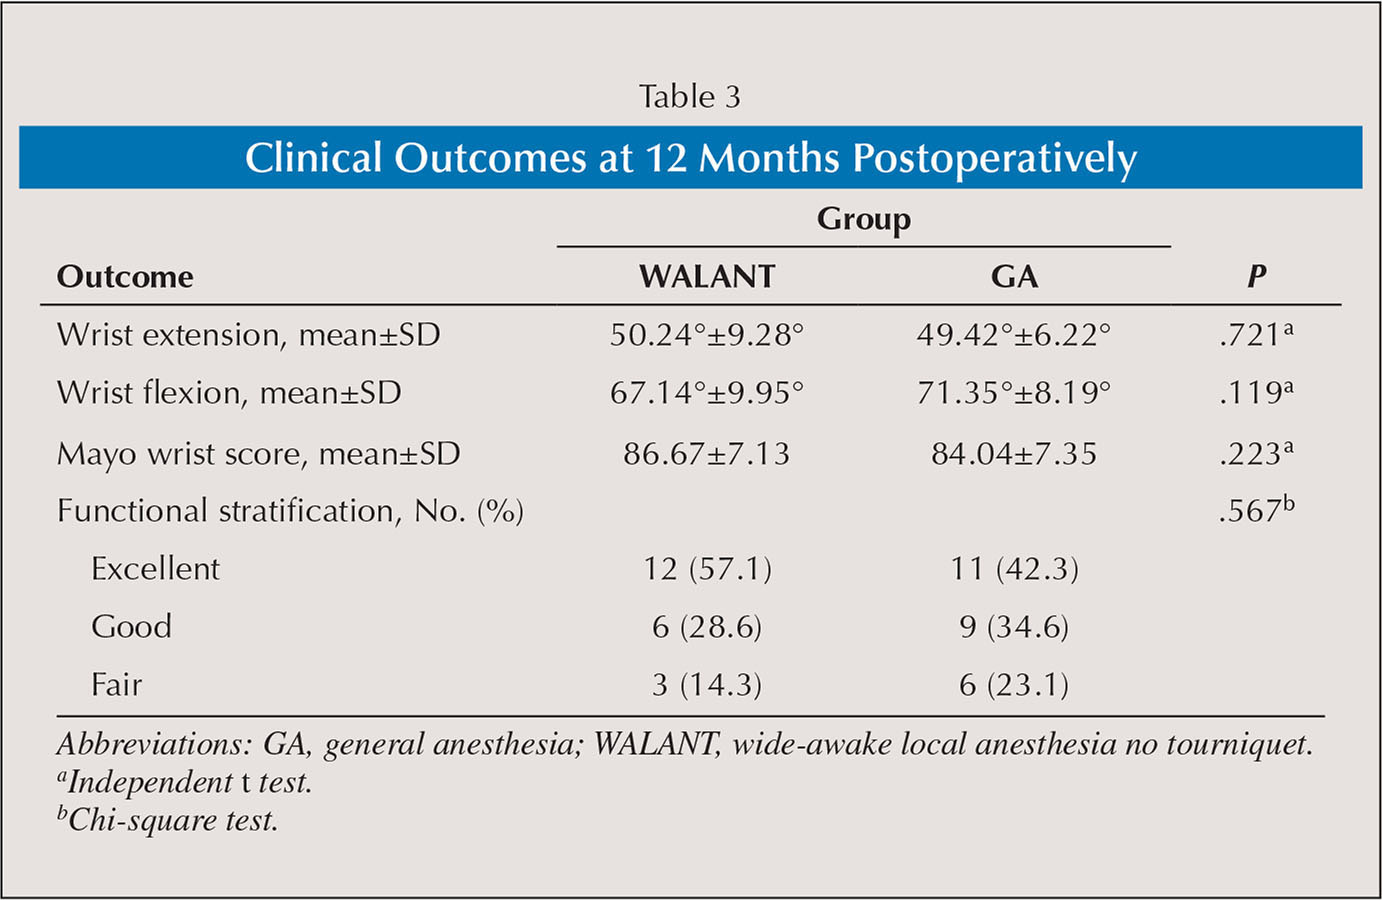 Clinical Outcomes at 12 Months Postoperatively